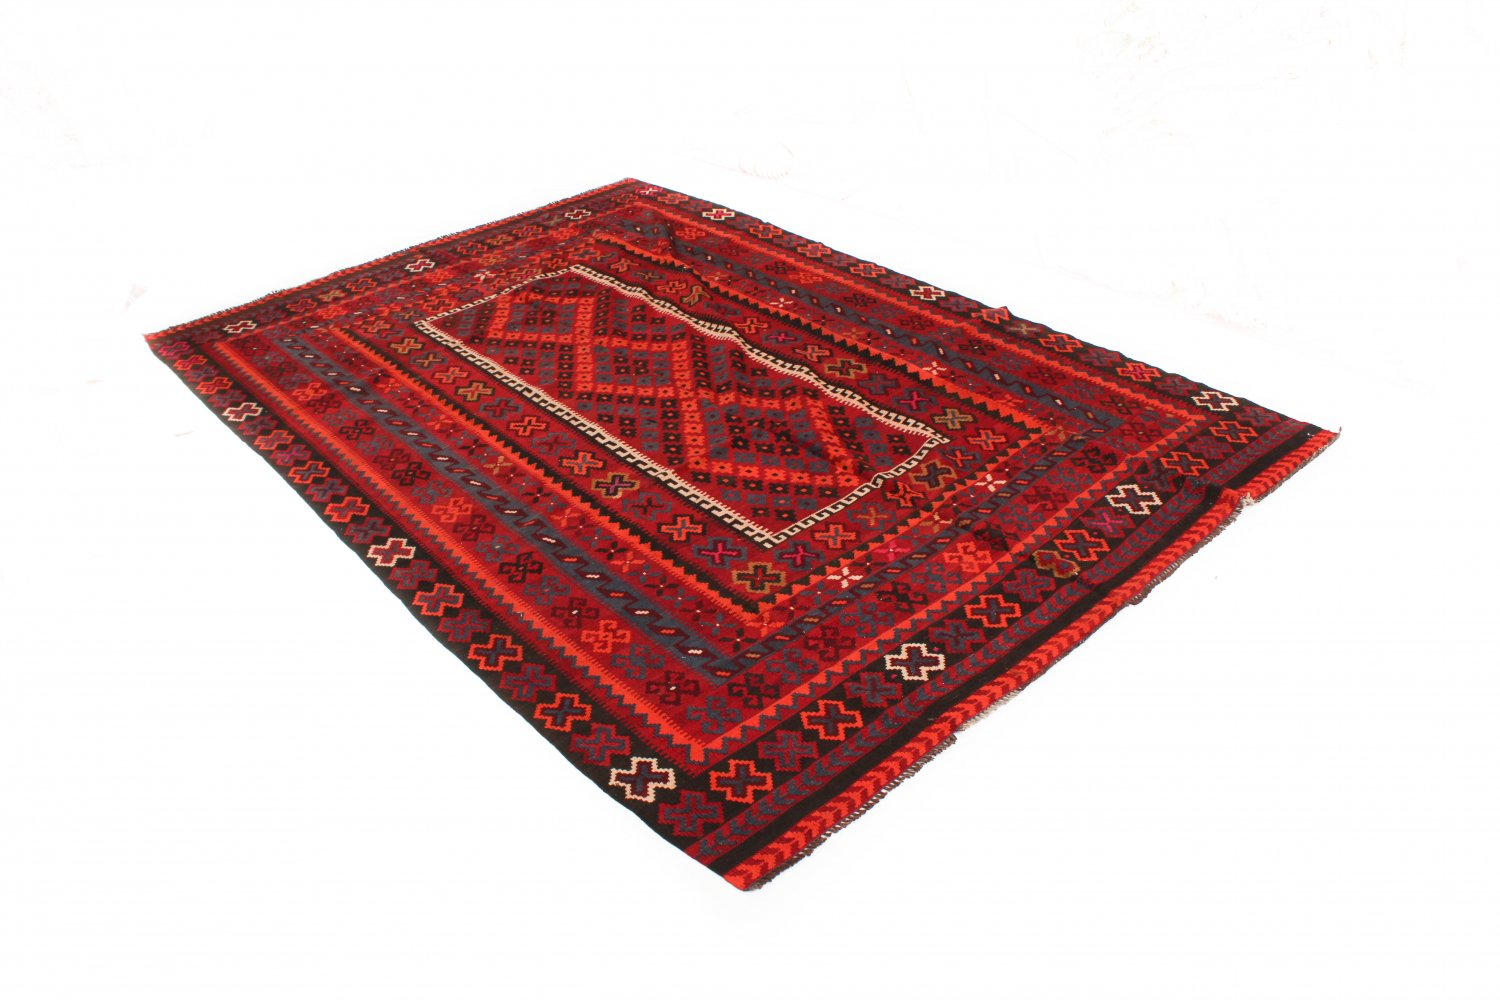 tapis kilim afghan 301 x 202 cm. Black Bedroom Furniture Sets. Home Design Ideas